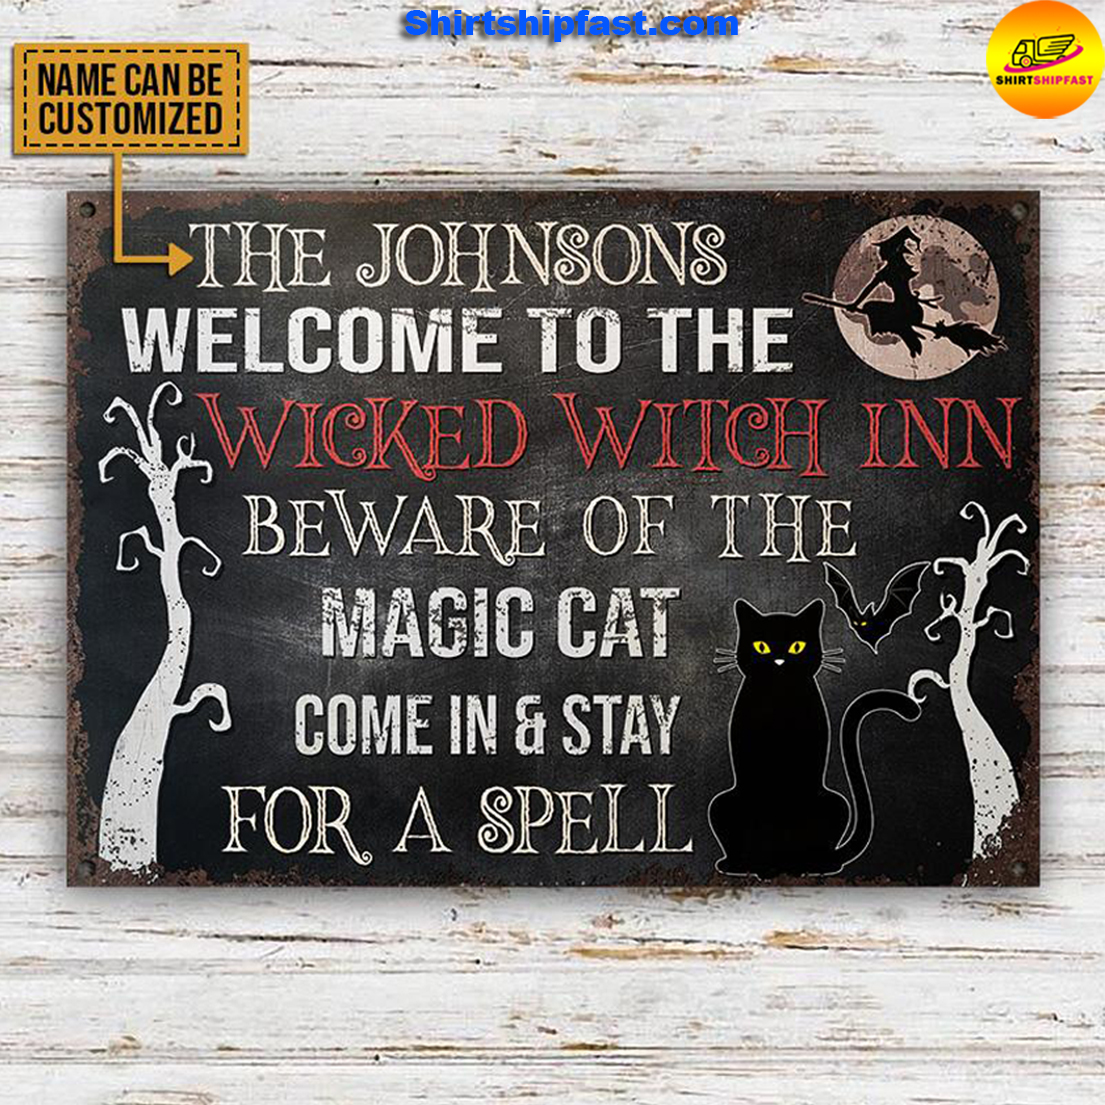 Welcome to the wicked witch inn beware of the magic cat custom name metal sign - Picture 1